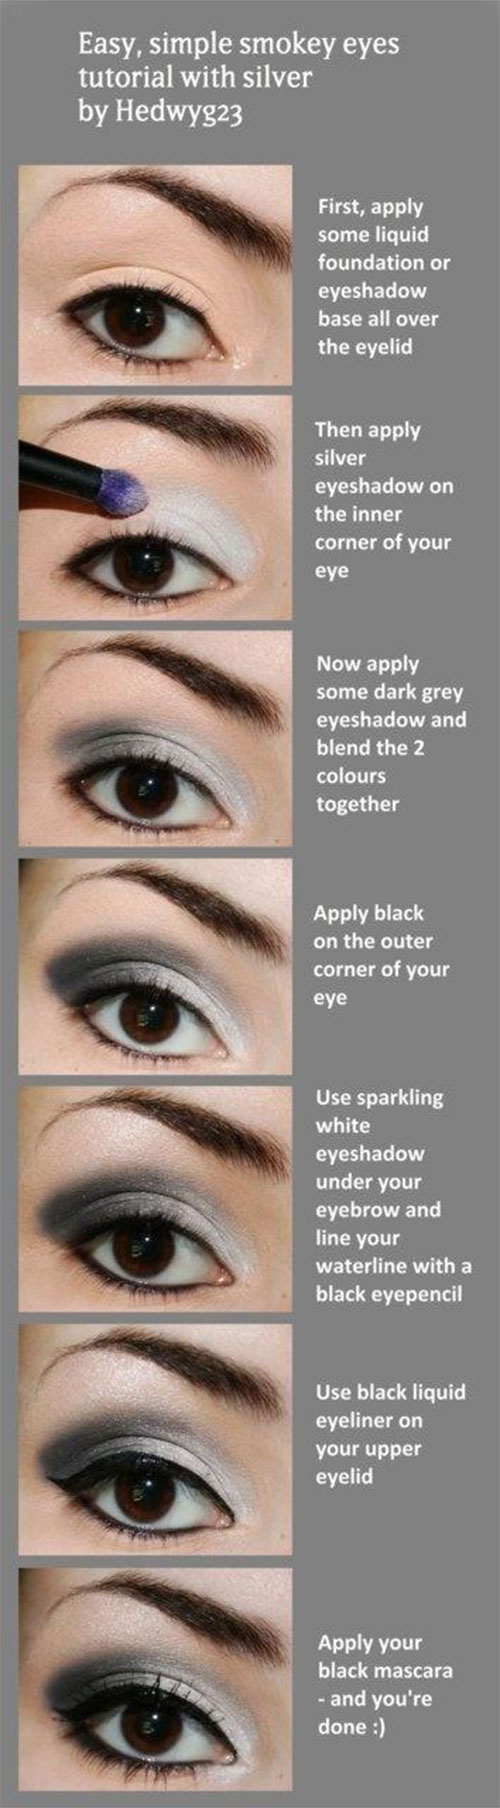 20-Happy-New-Year-Eve-Eye-Makeup-Tutorial-2015-25